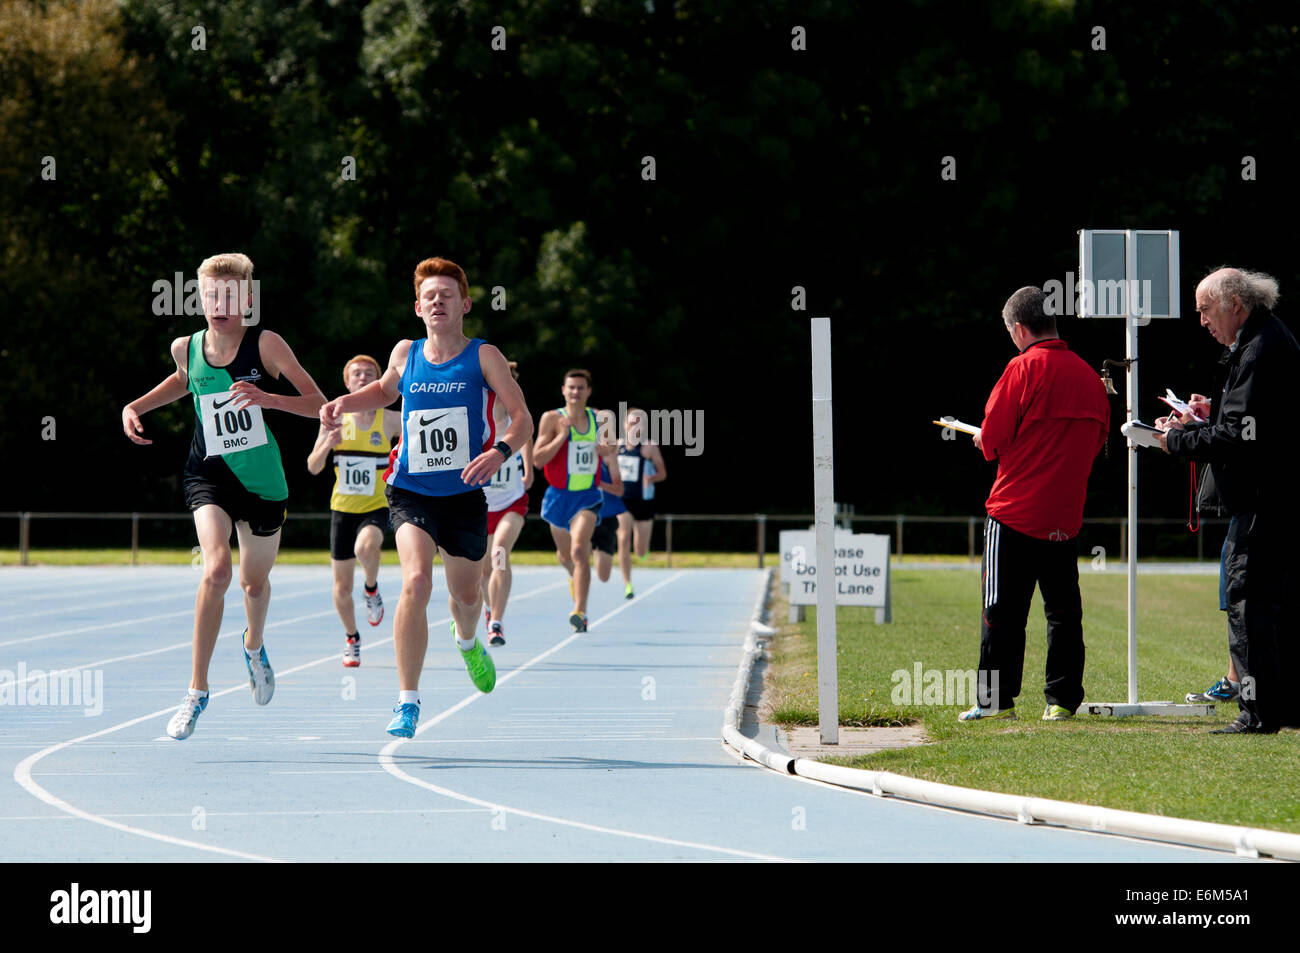 Runners at finish of a middle-distance race, Coventry, UK - Stock Image